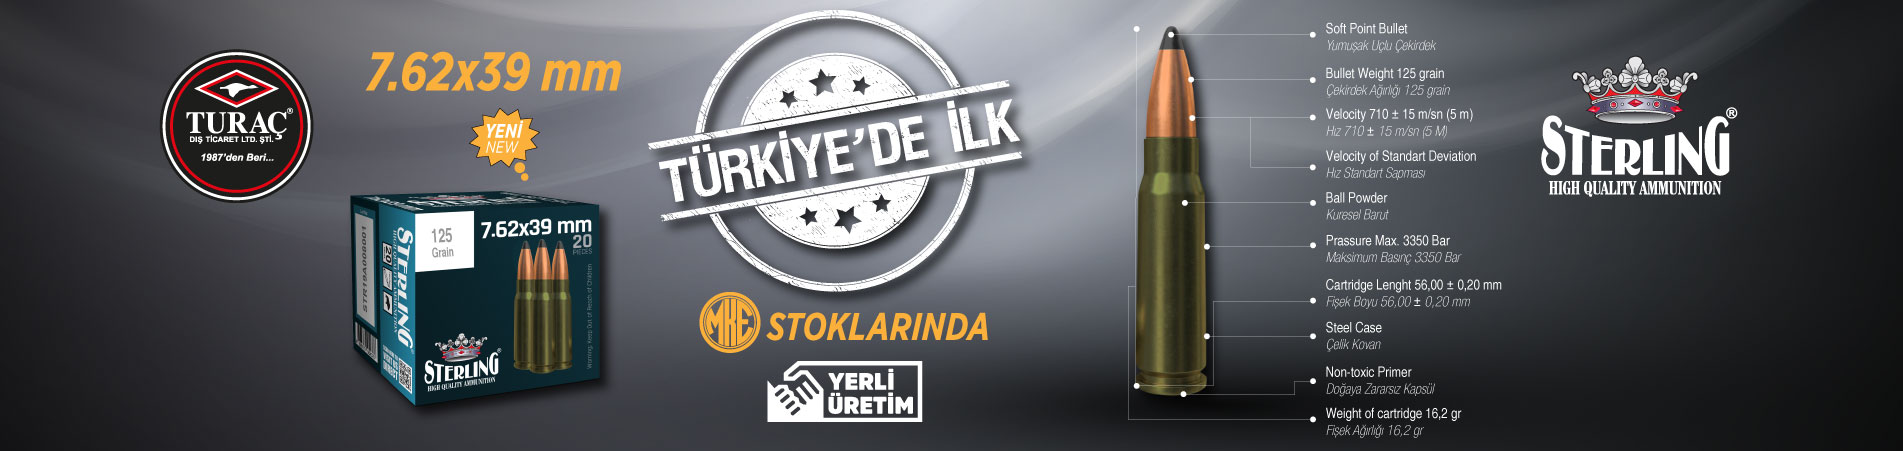 Local Production 7.62x39 mm Cartridge of Turaç in MKEK Stocks